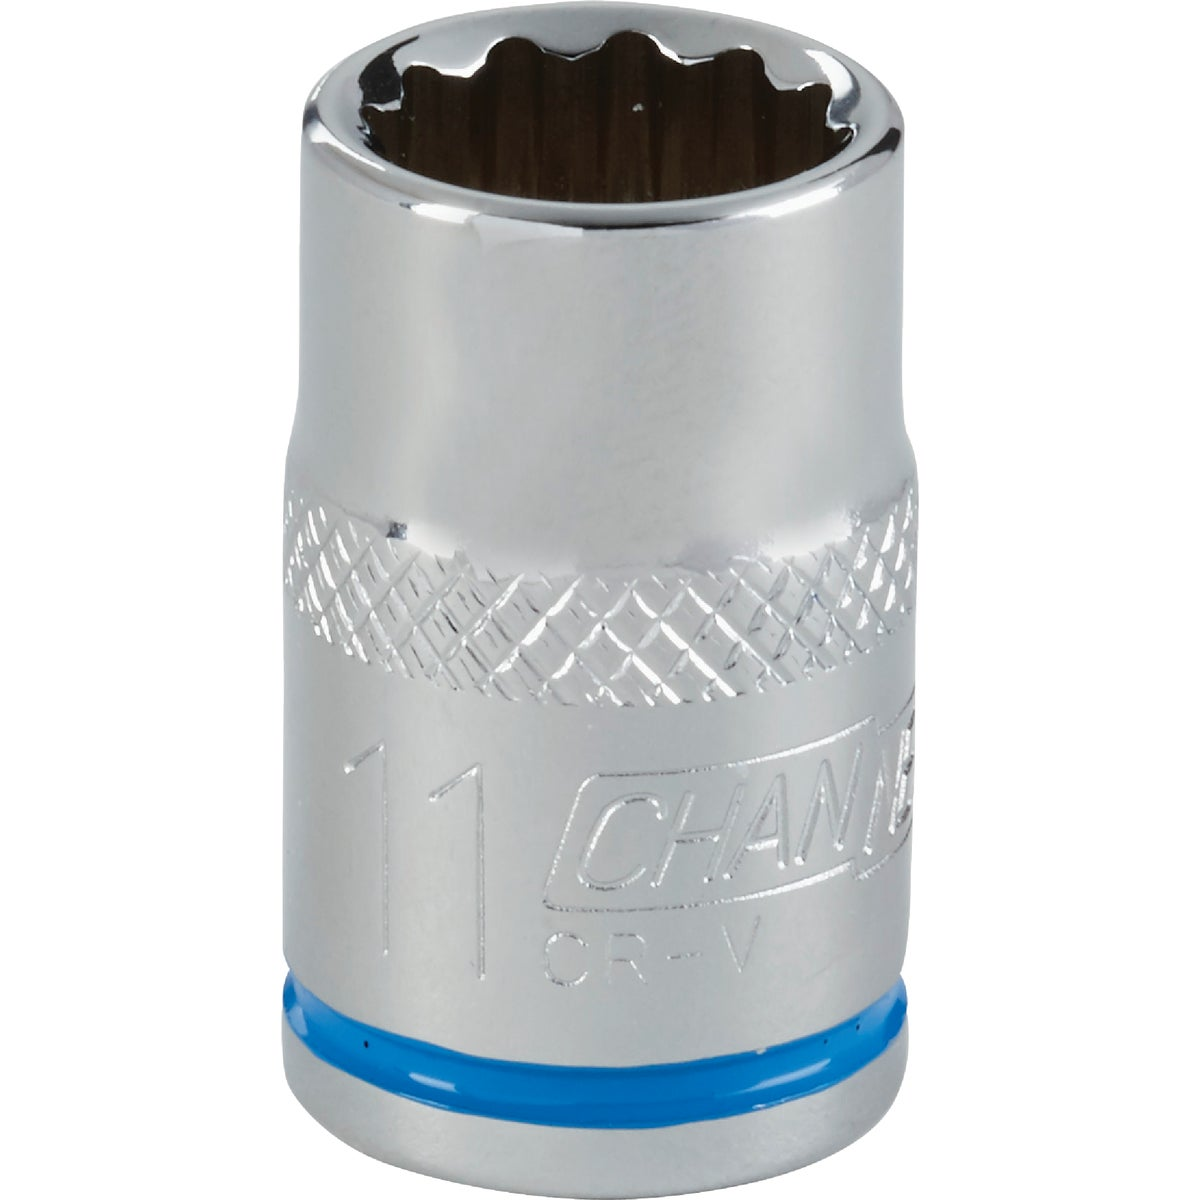 "11MM 3/8"" DRIVE SOCKET - 309095 by Do it Best"